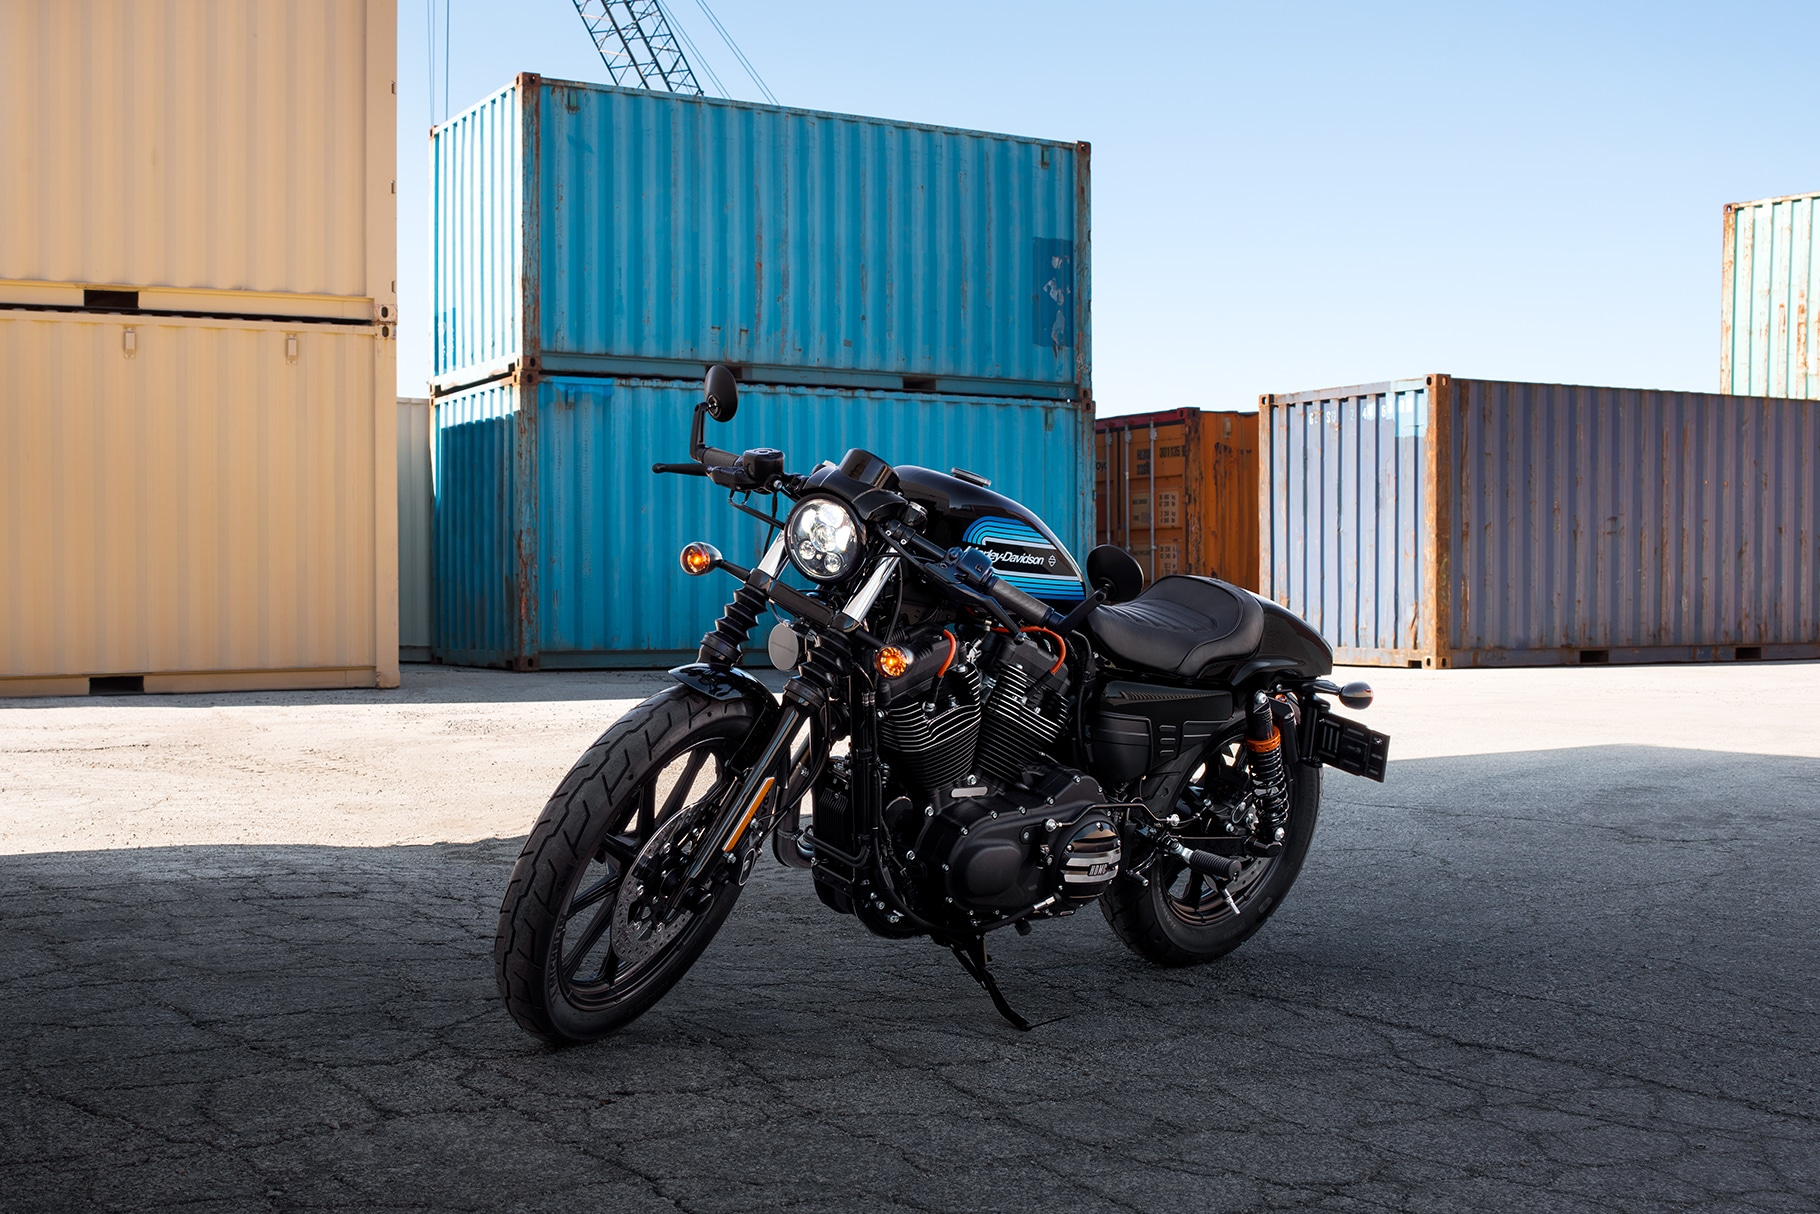 2019 Harley-Davidson Iron 1200 motorcycle parked at a loading dock